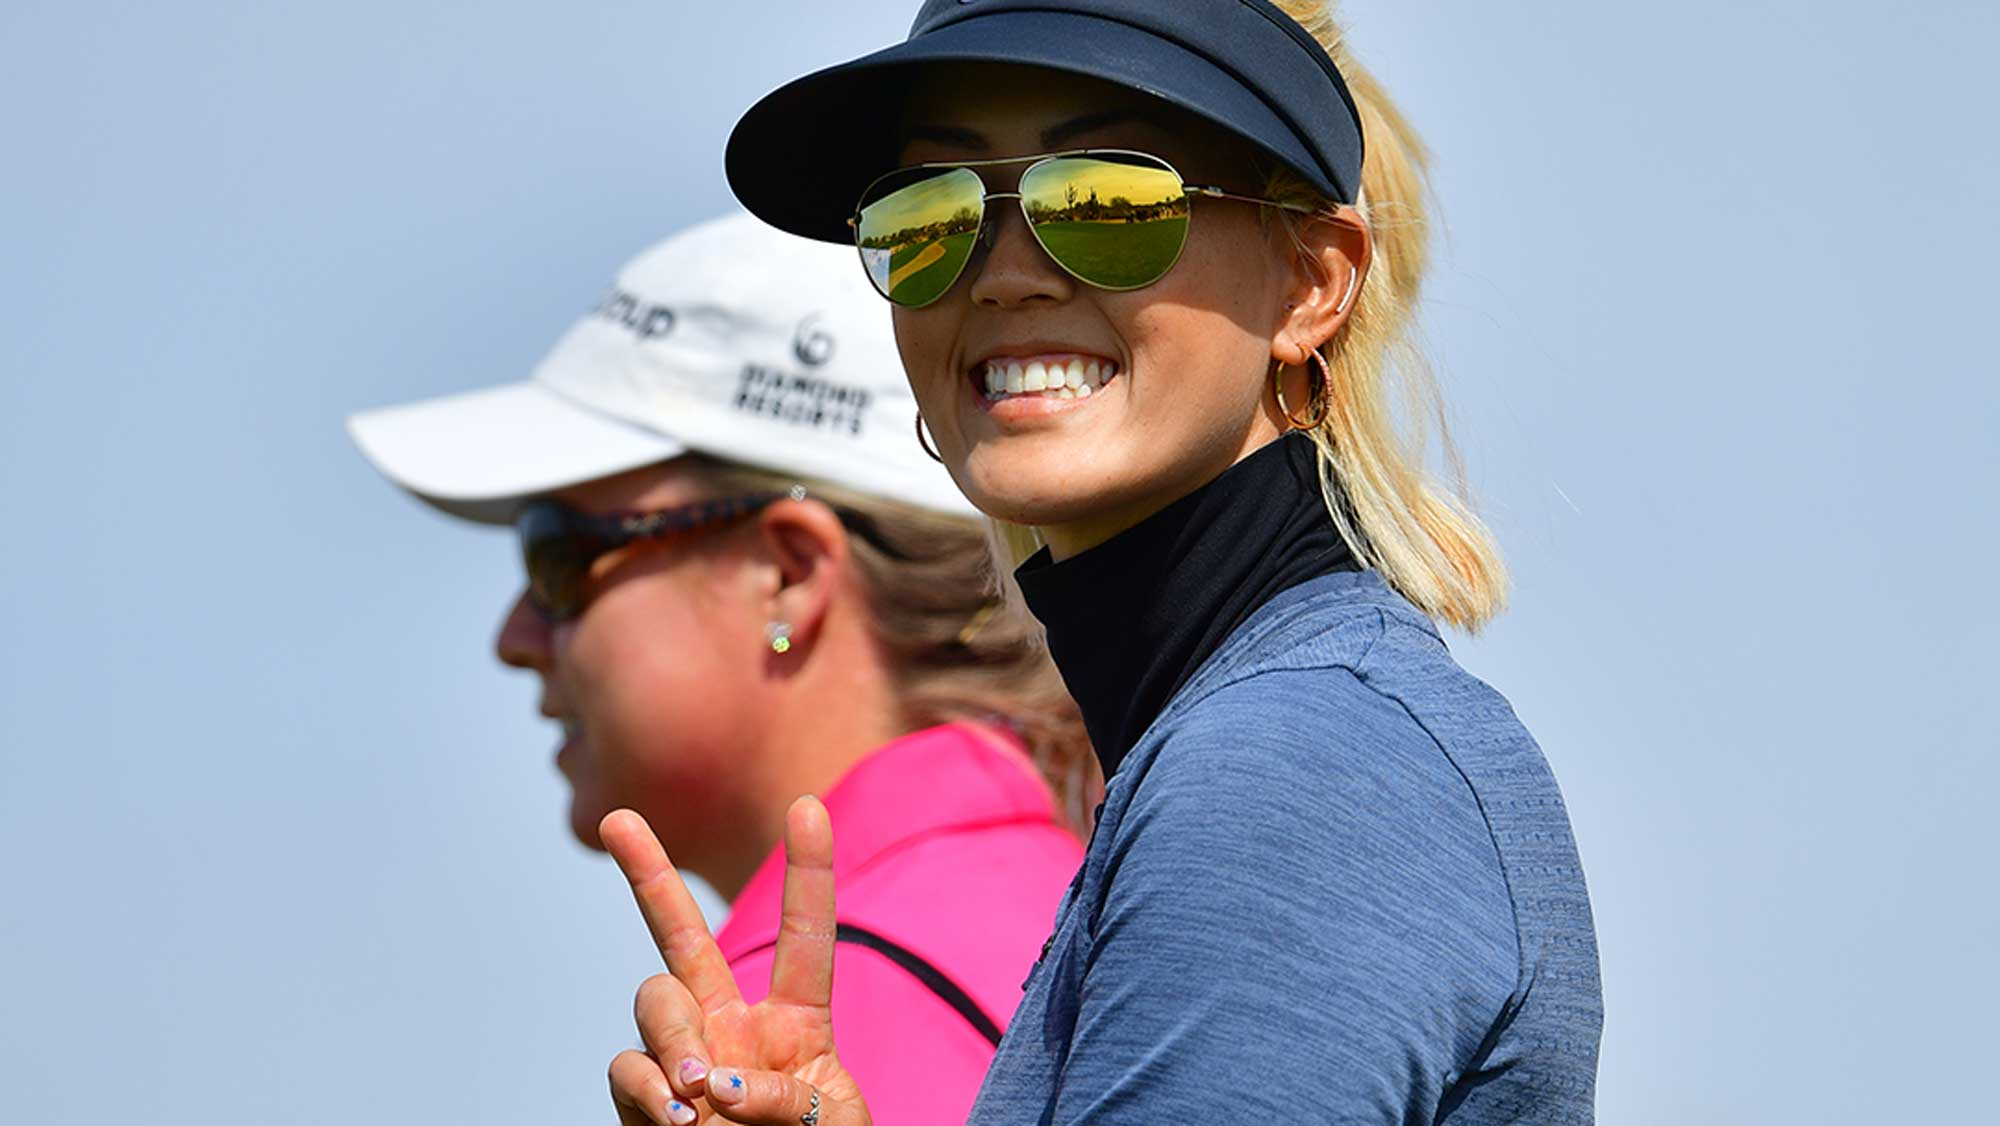 Michelle Wie Gives the Peace Sign to the Camera